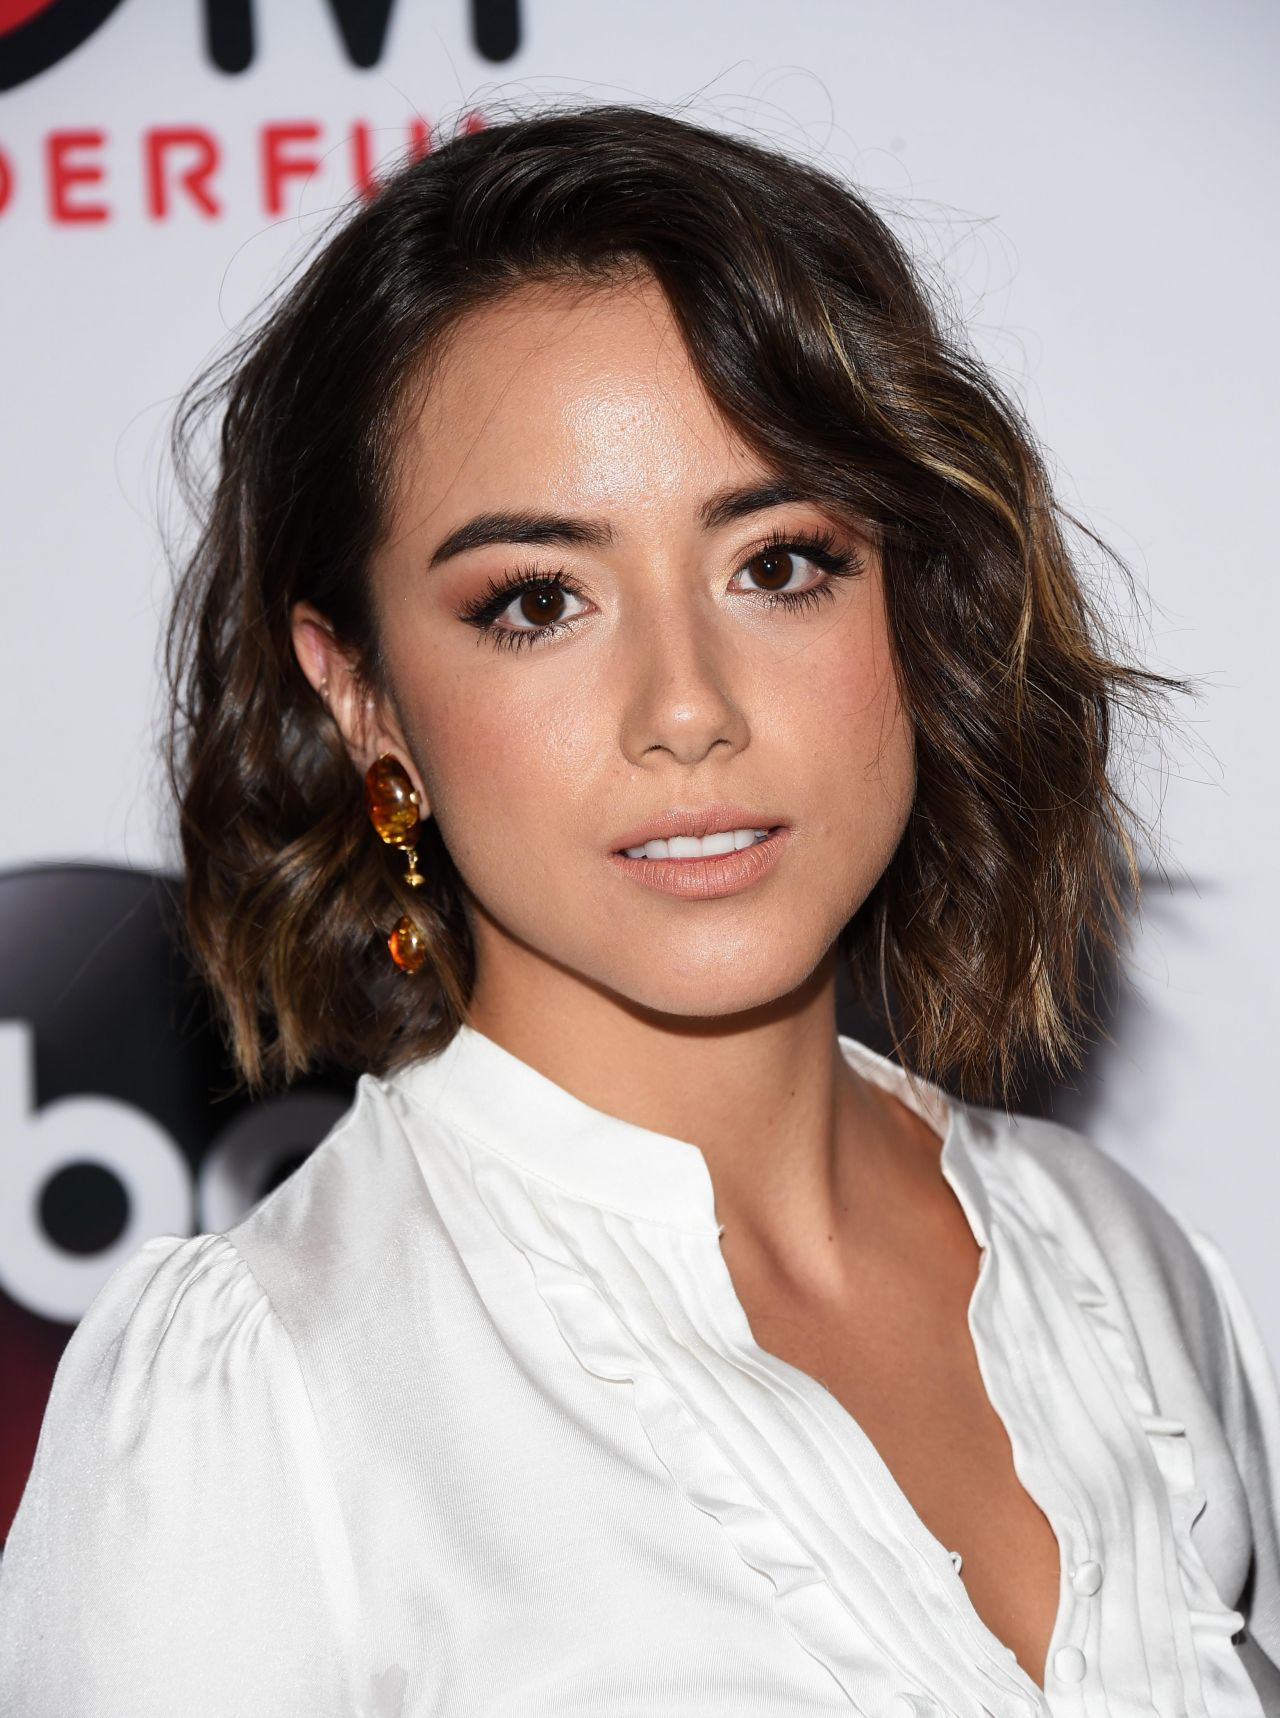 chloe bennet photoshootschloe bennet gif, chloe bennet photoshoots, chloe bennet вк, chloe bennet walking dead, chloe bennet agents of shield, chloe bennet 2017, chloe bennet site, chloe bennet wallpaper, chloe bennet brett dalton, chloe bennet fan site, chloe bennet png, chloe bennet tattoo, chloe bennet gallery, chloe bennet facebook, chloe bennet listal, chloe bennet tumblr gifs, chloe bennet song, chloe bennet films, chloe bennet fan, chloe bennet wiki